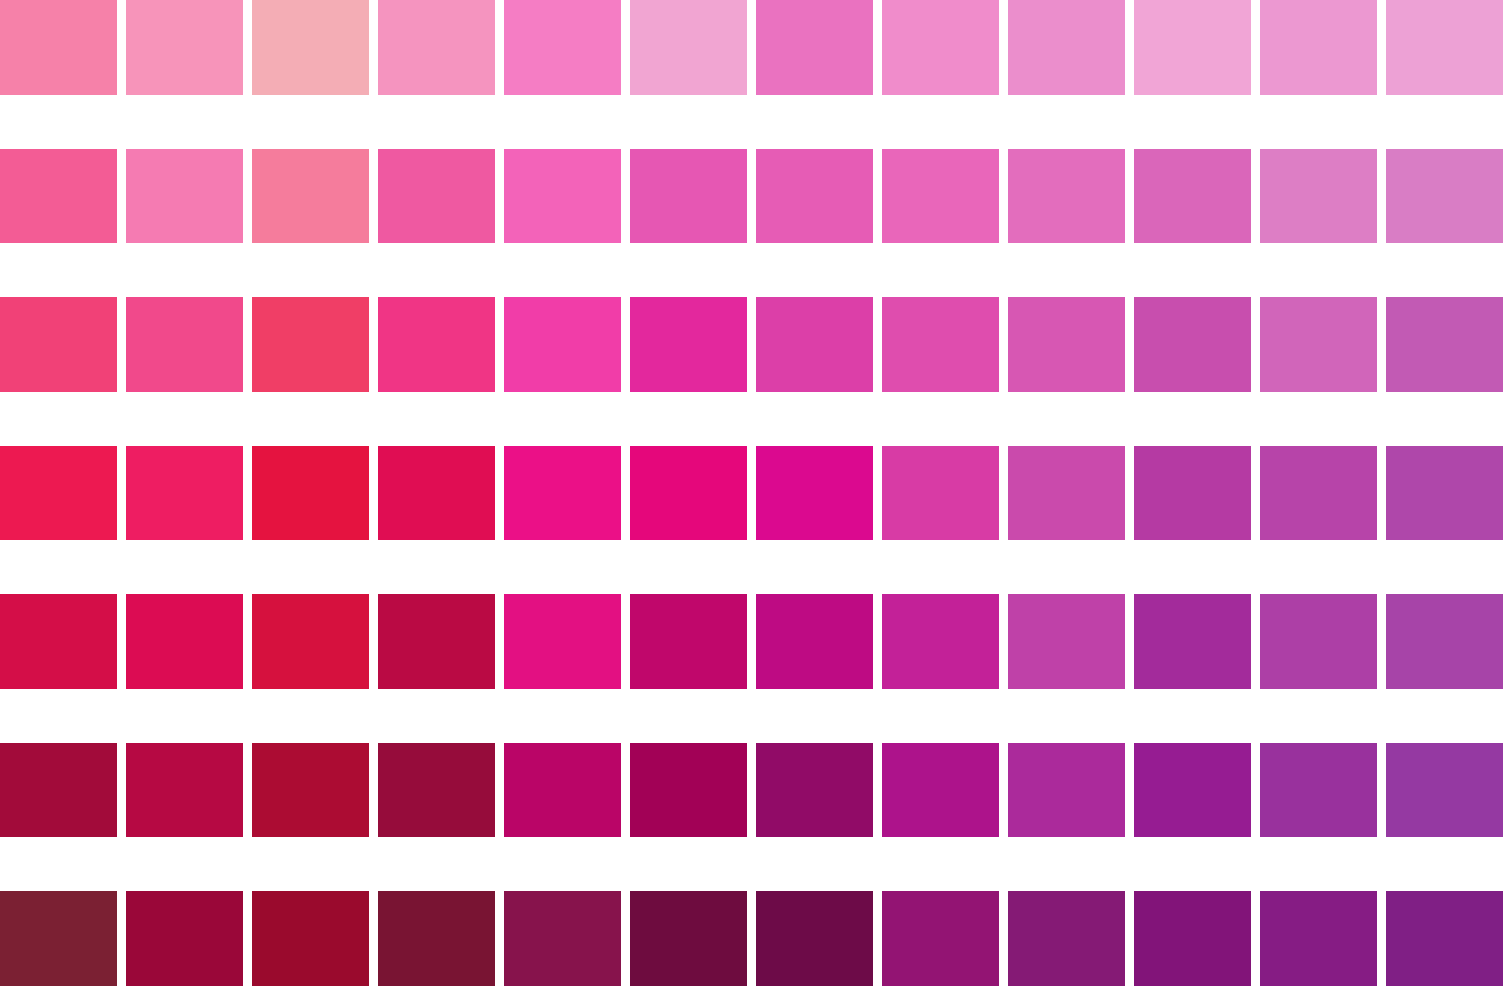 Free Pantone Color Chart Pdf 68kb 14 Pages Page 3